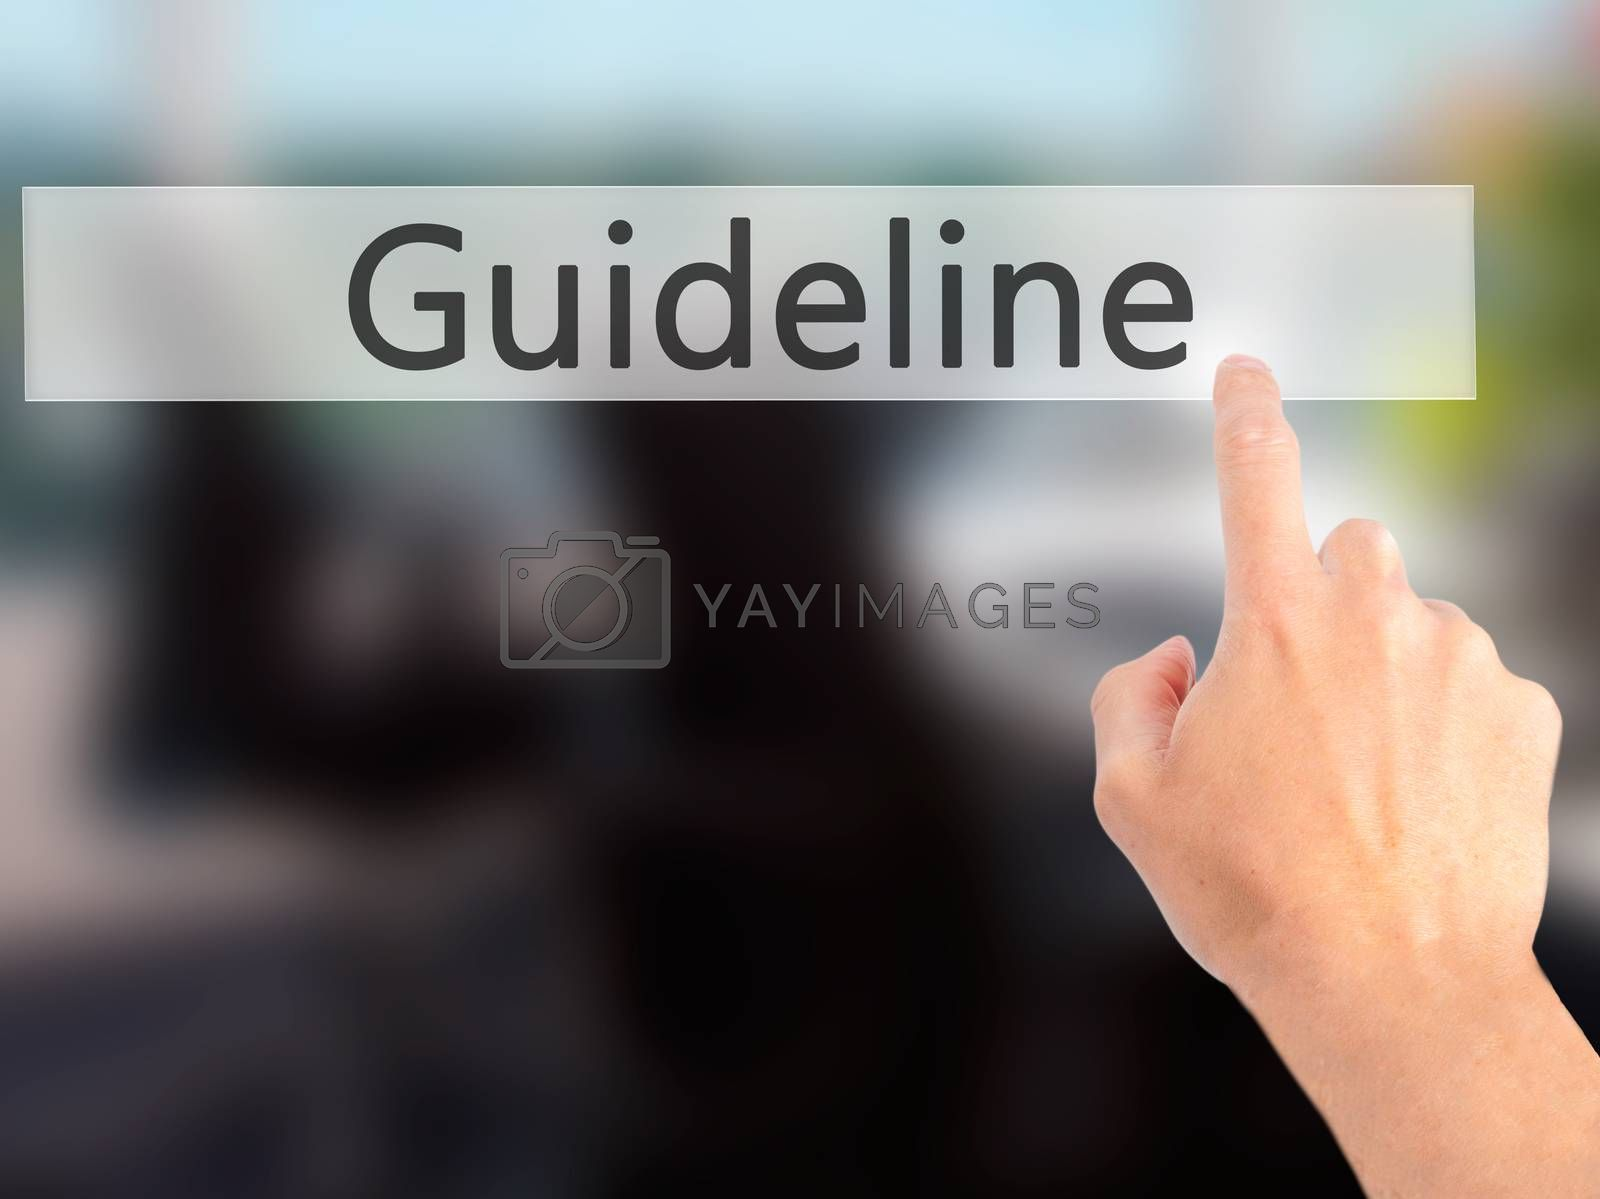 Guideline  - Hand pressing a button on blurred background concep by netsay.net